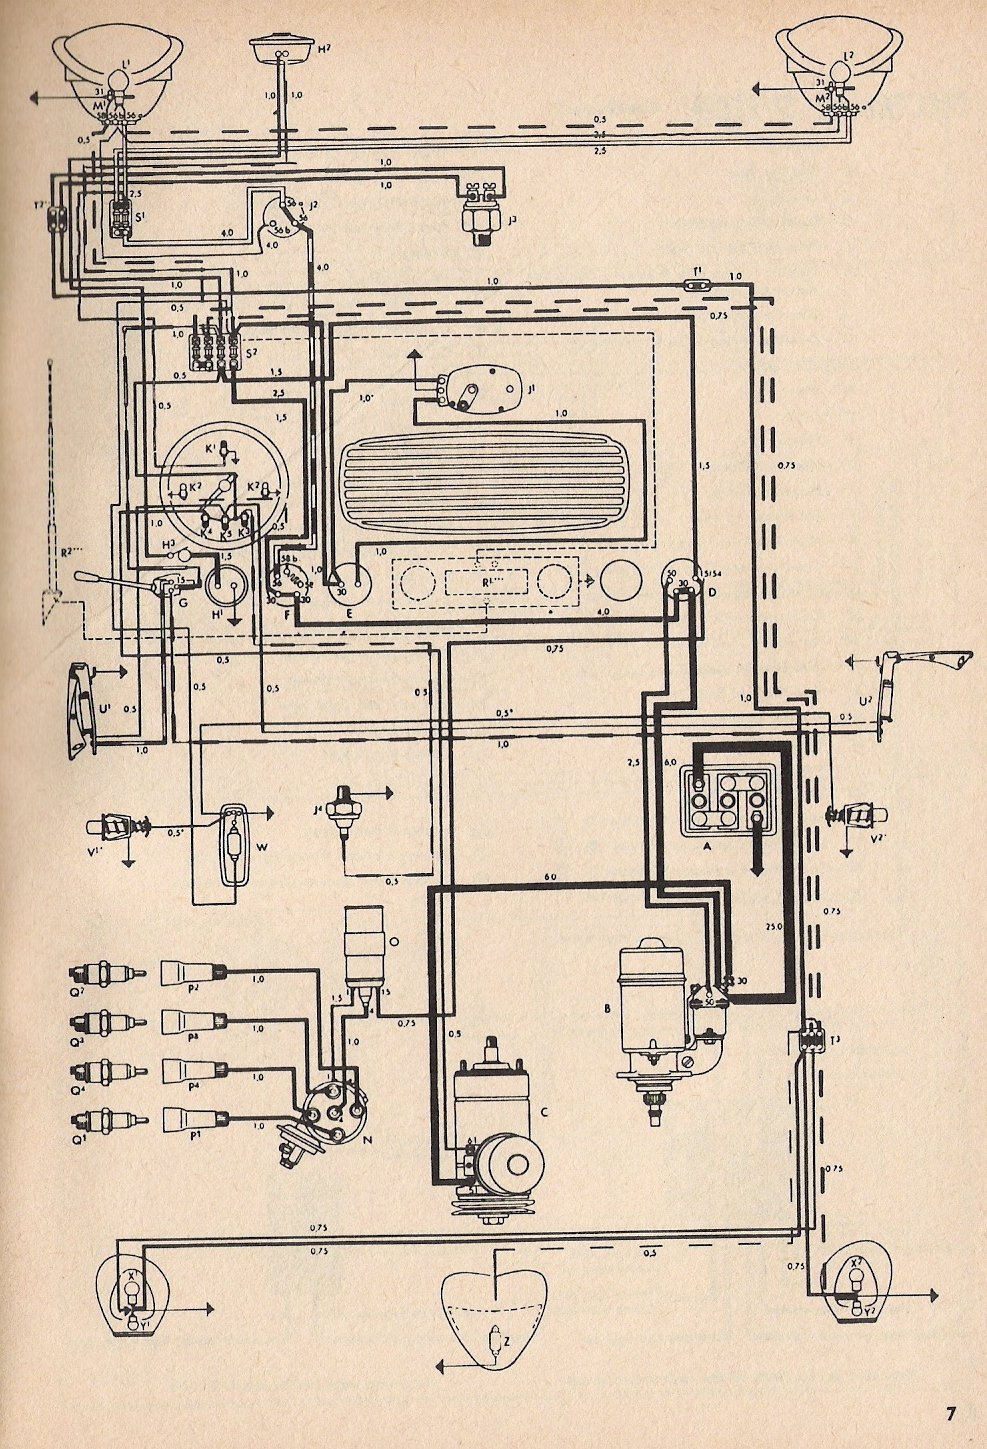 bug_54 thesamba com type 1 wiring diagrams 1971 vw super beetle wiring diagram at bayanpartner.co